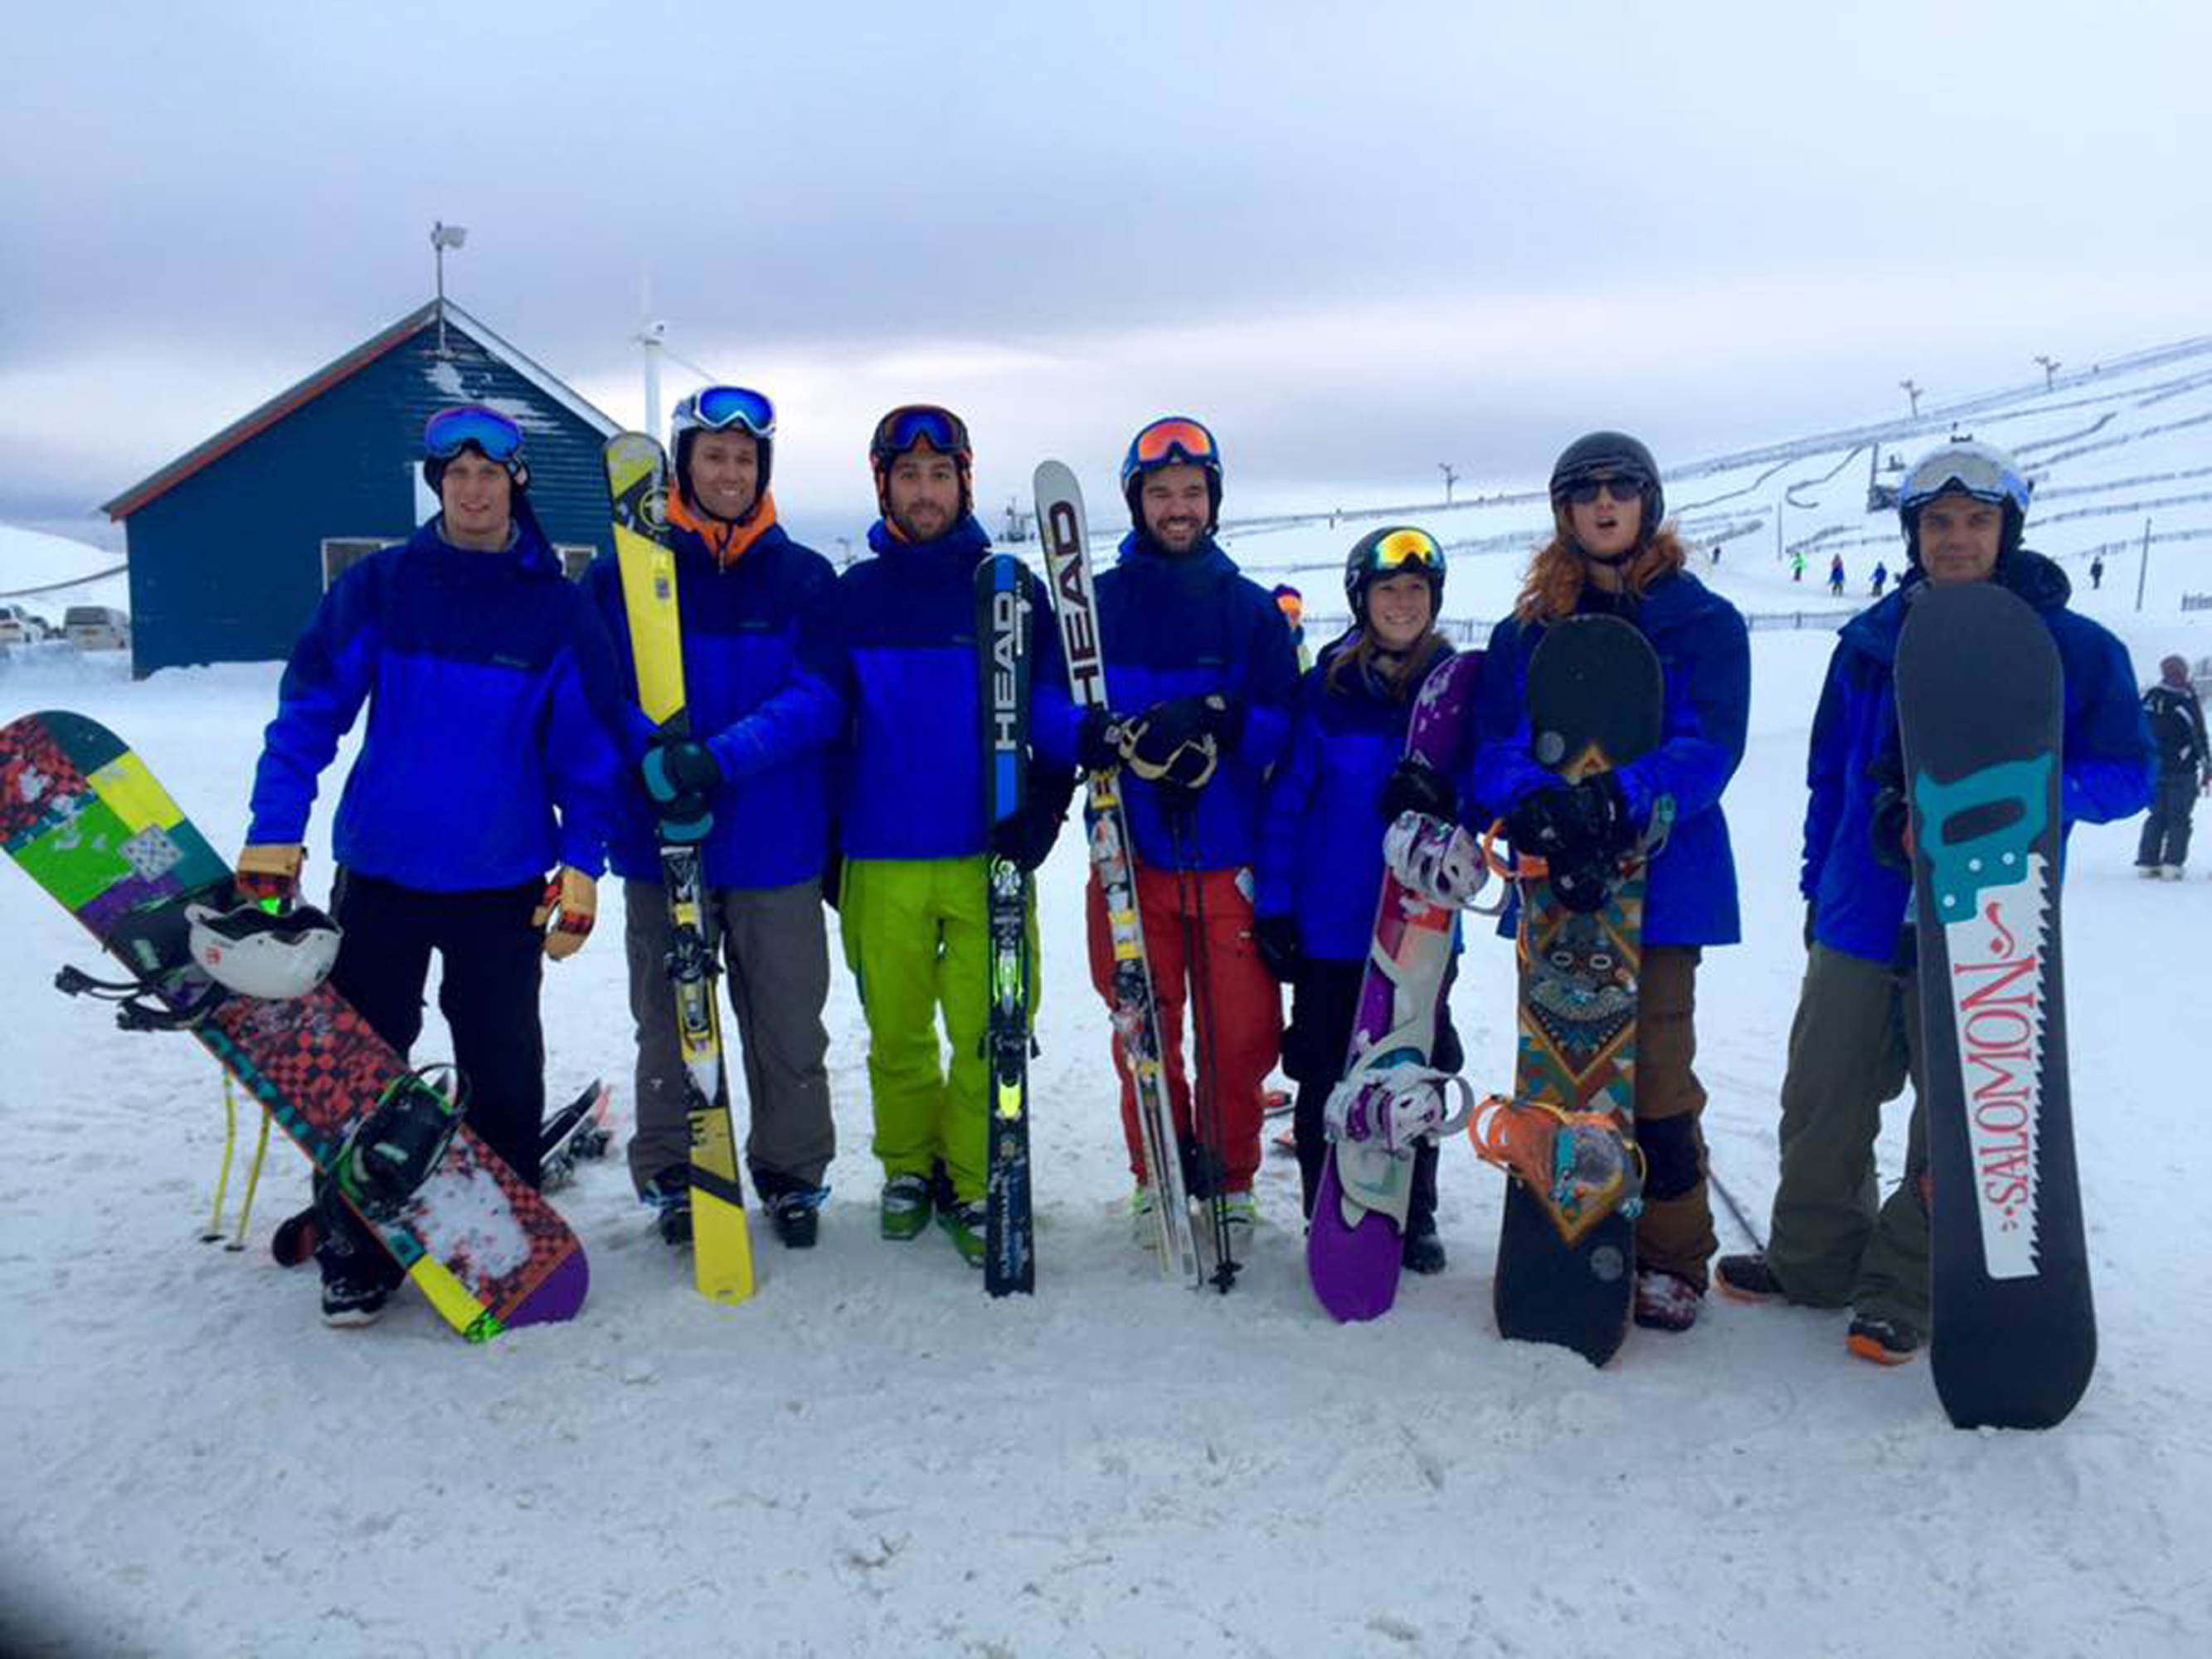 Members of Aberdeen Snowsports Club at the Lecht, from left, Adam Senior, Martin Ritchie, Jiacomo Zecca, Josef Tautscher, Jen Hibbert, Stuart Innes and Neil Cameron.